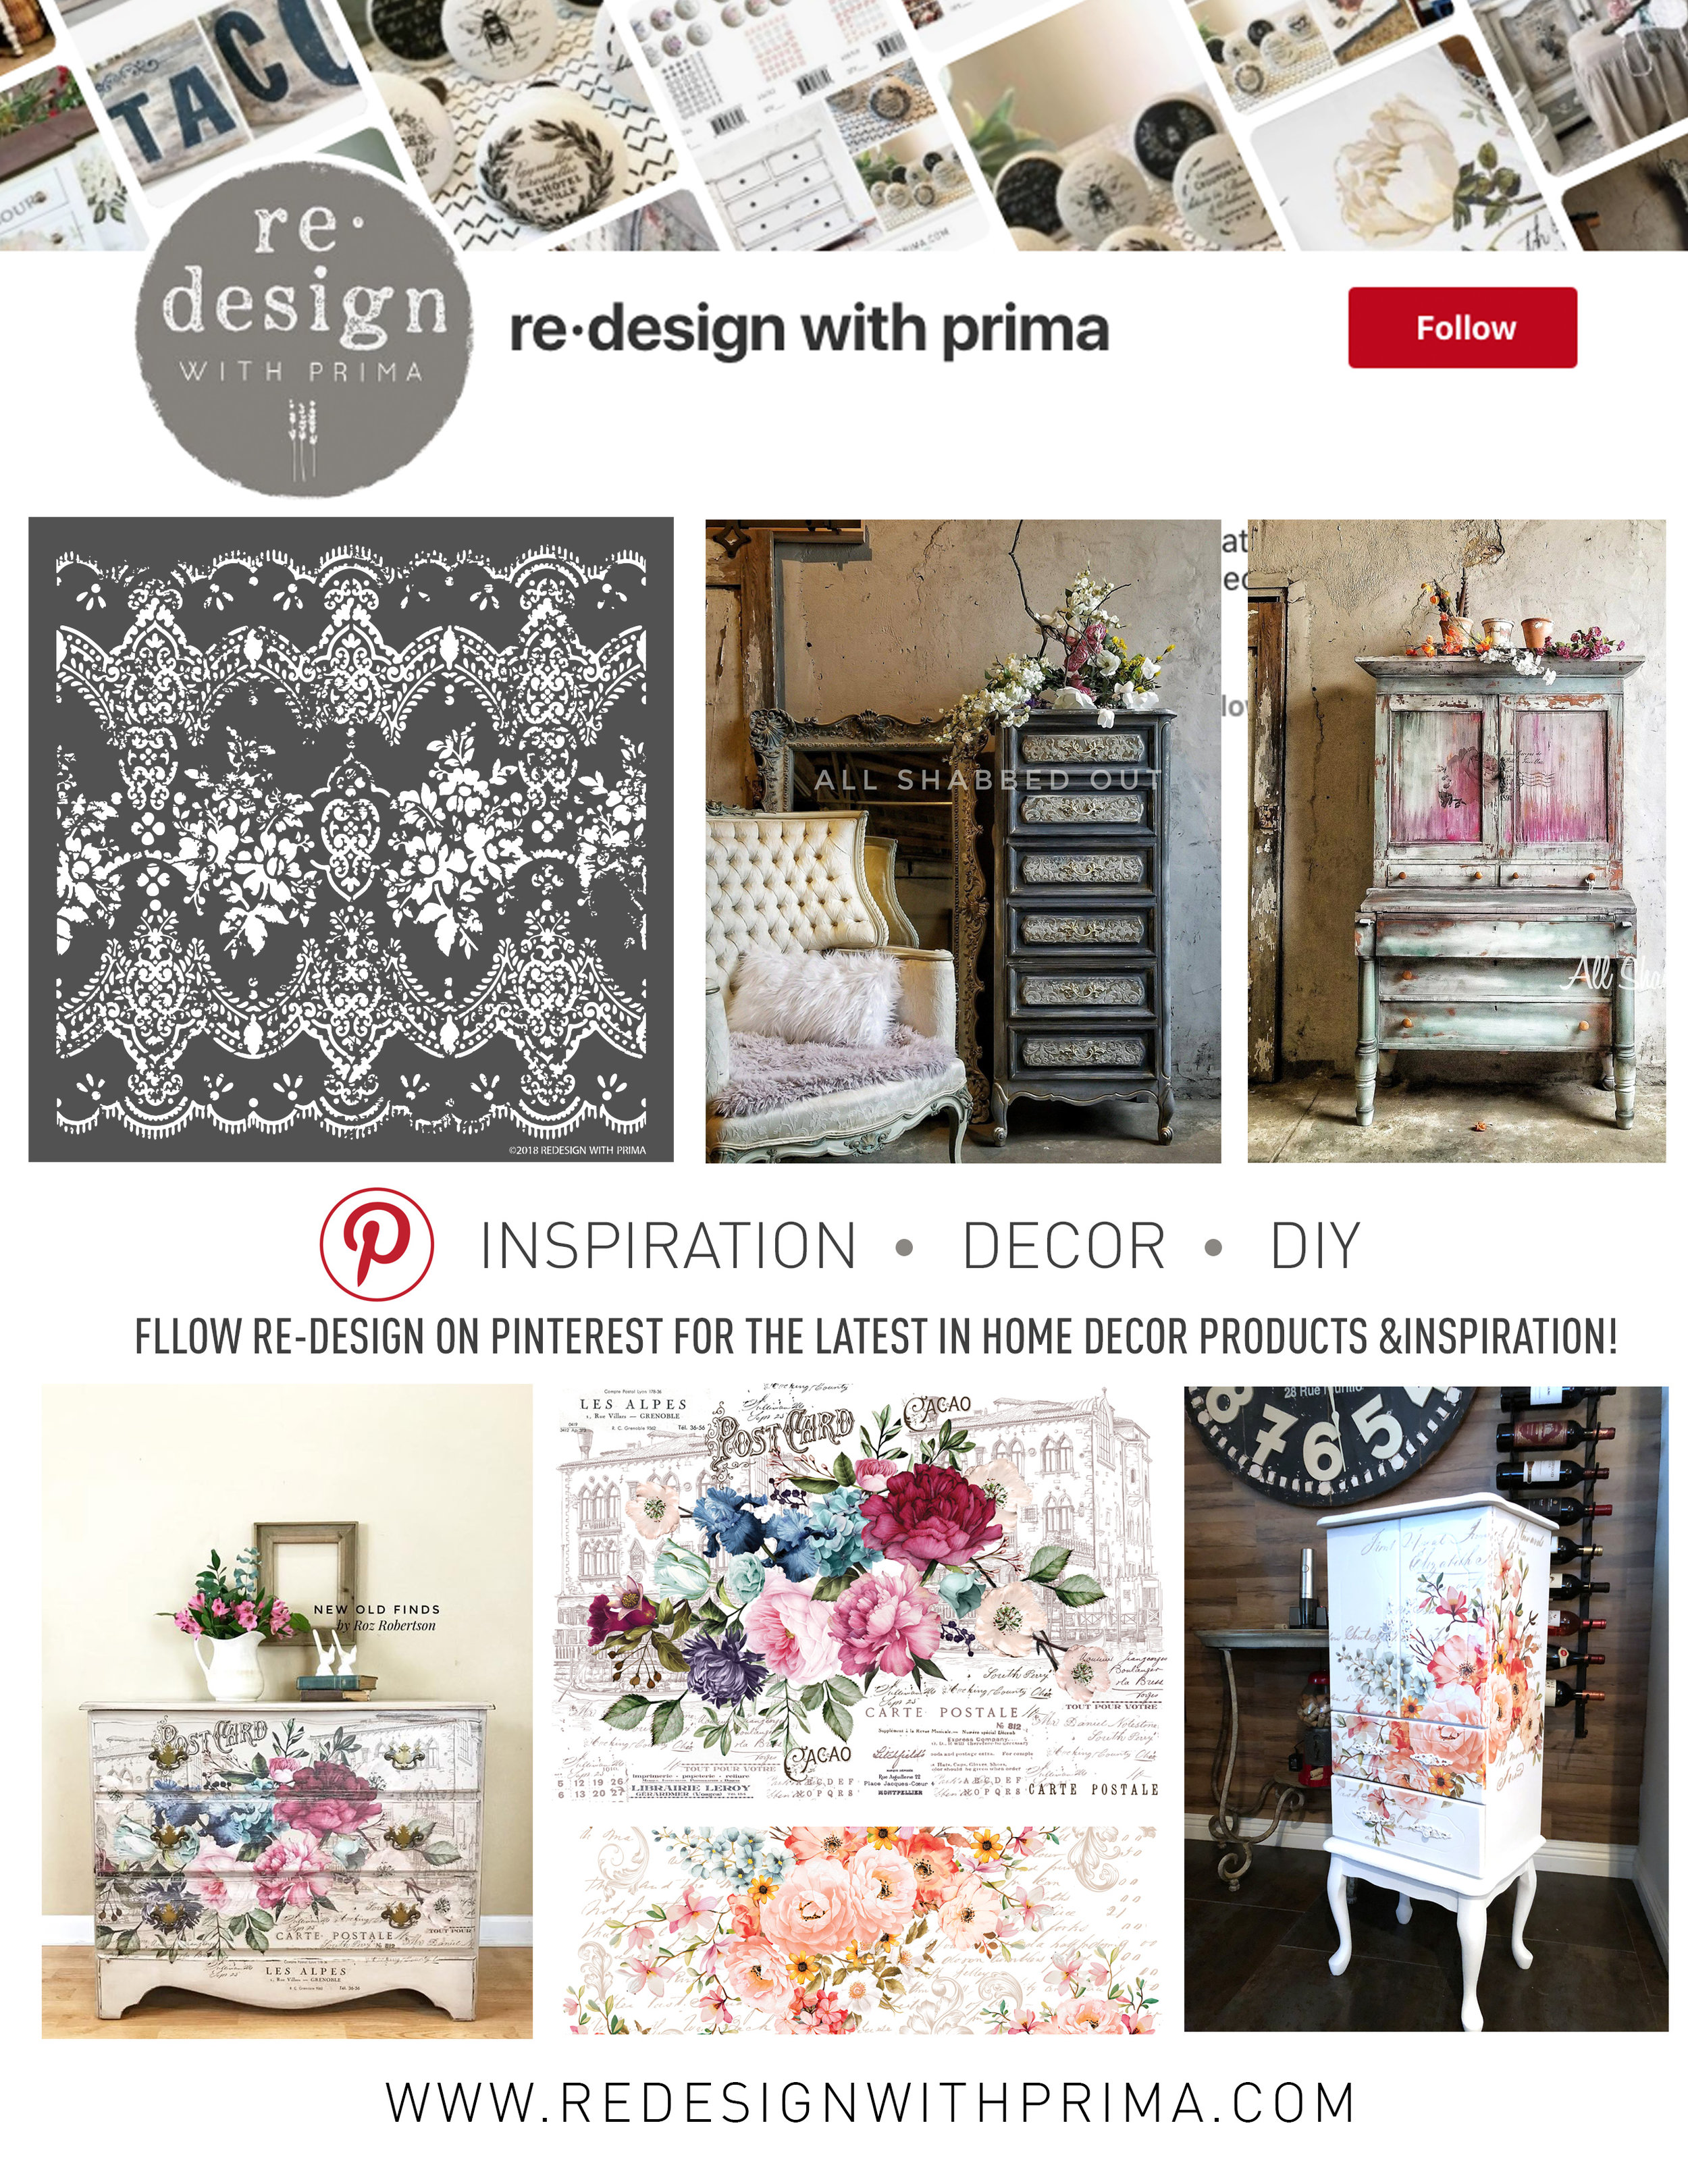 And if you are interested in seeing more fabulous projects like this, be sure to follow us on  Pinterest!  We loads of inspiration on all of our boards...  Thanks for stopping by and be sure to check back often!